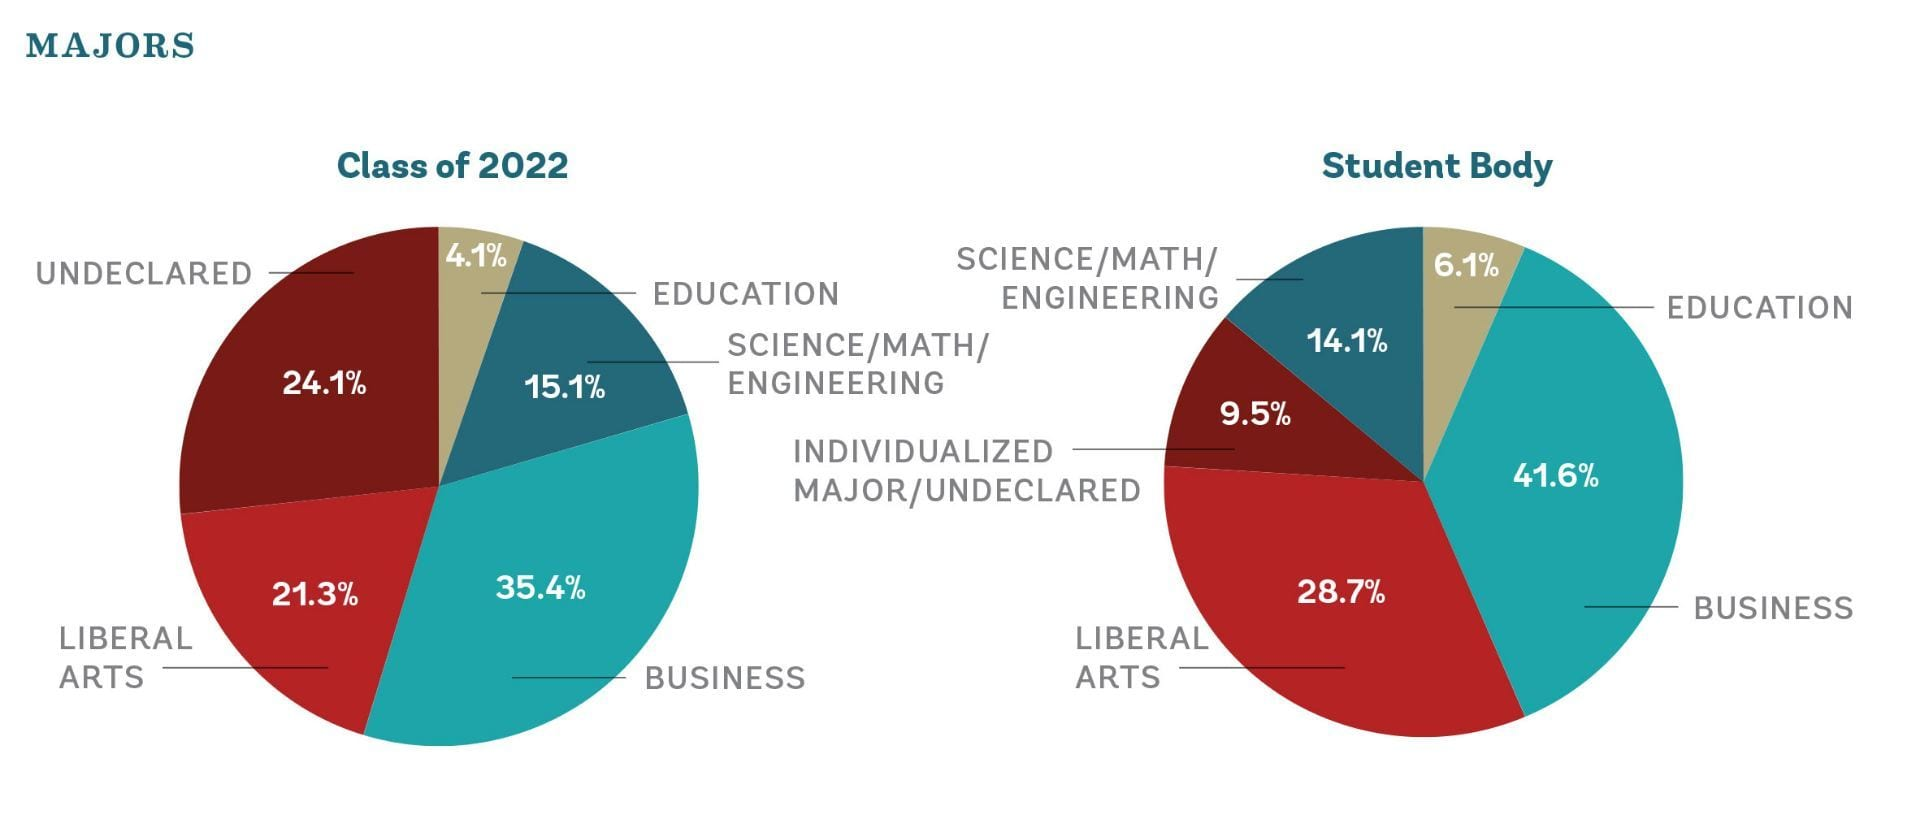 Most popular majors are business, followed by liberal arts